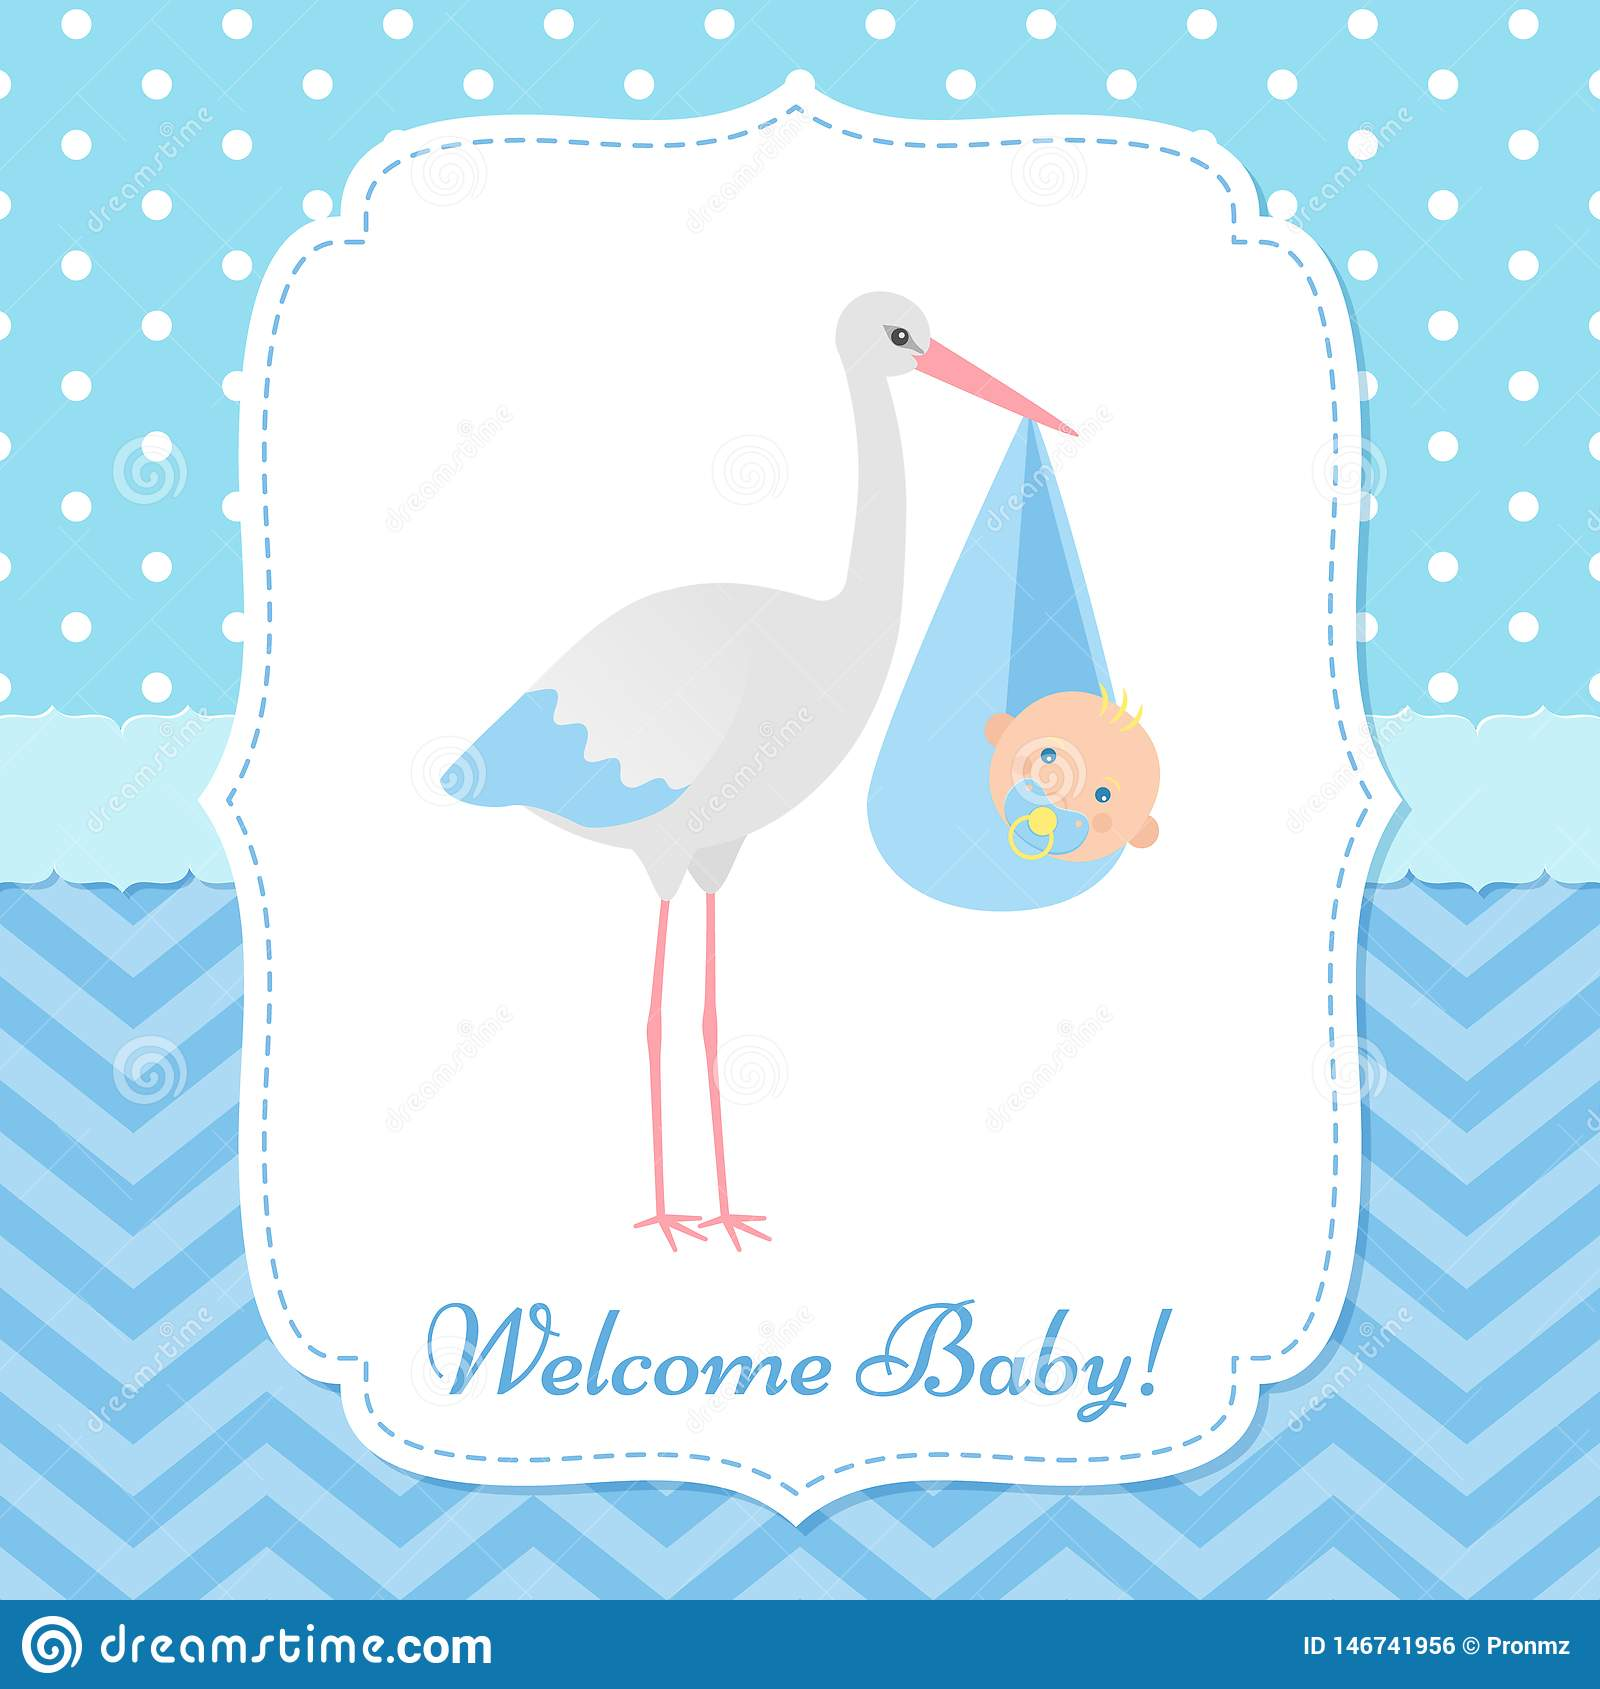 Baby Shower Card Design Vector Illustration Birthday